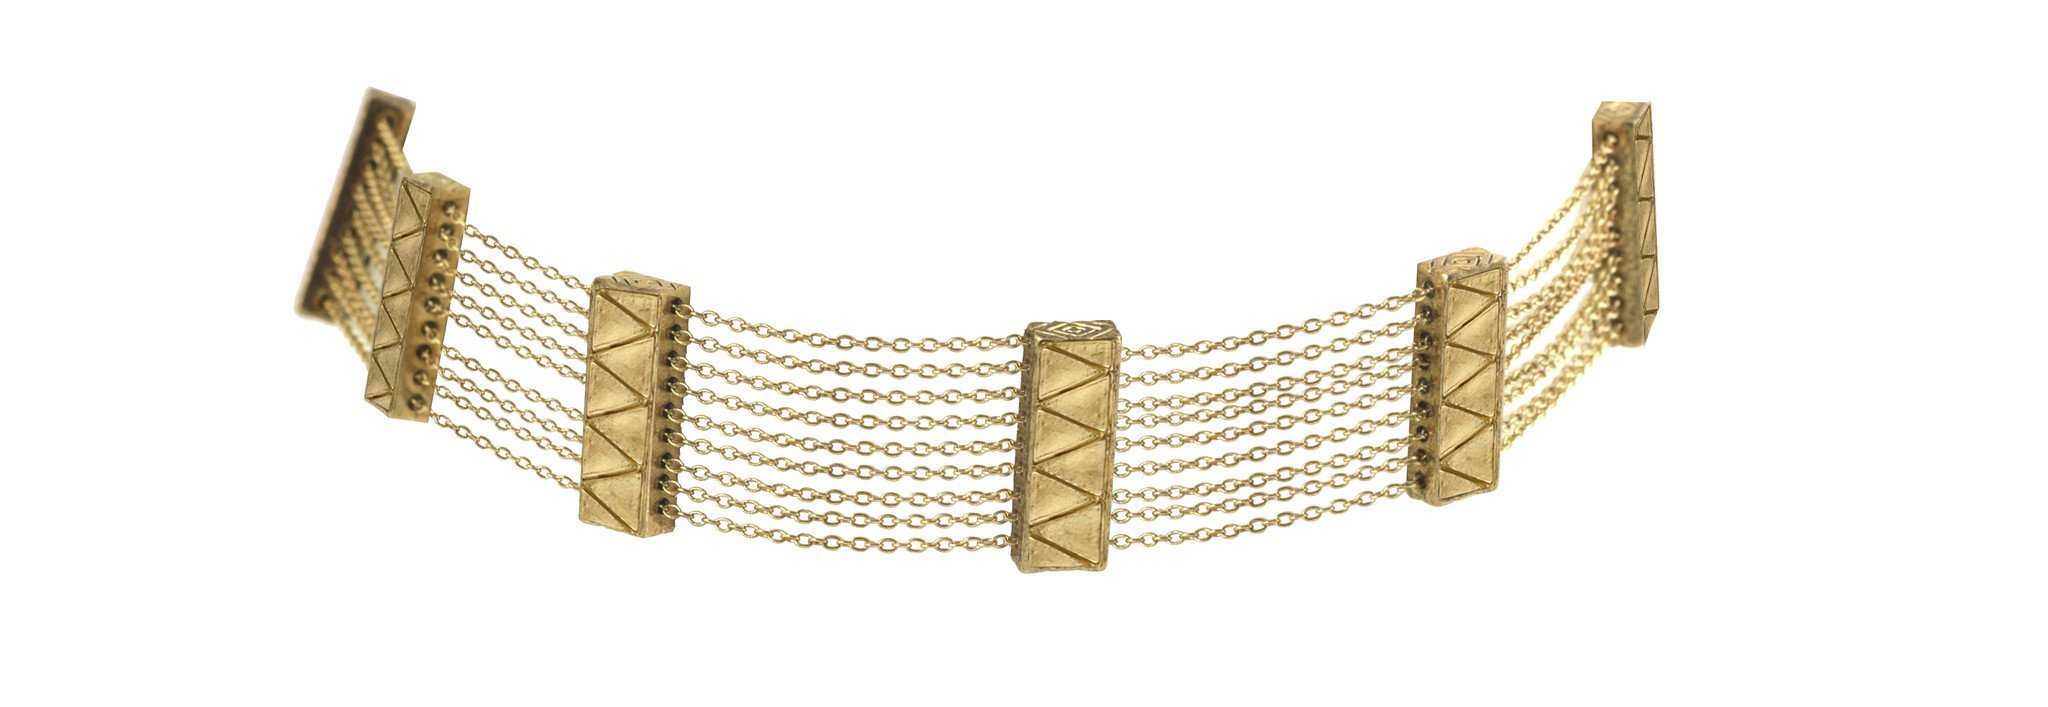 Women outfit in a necklace rental from House of Harlow 1960 called Peak To Peak Choker Necklace